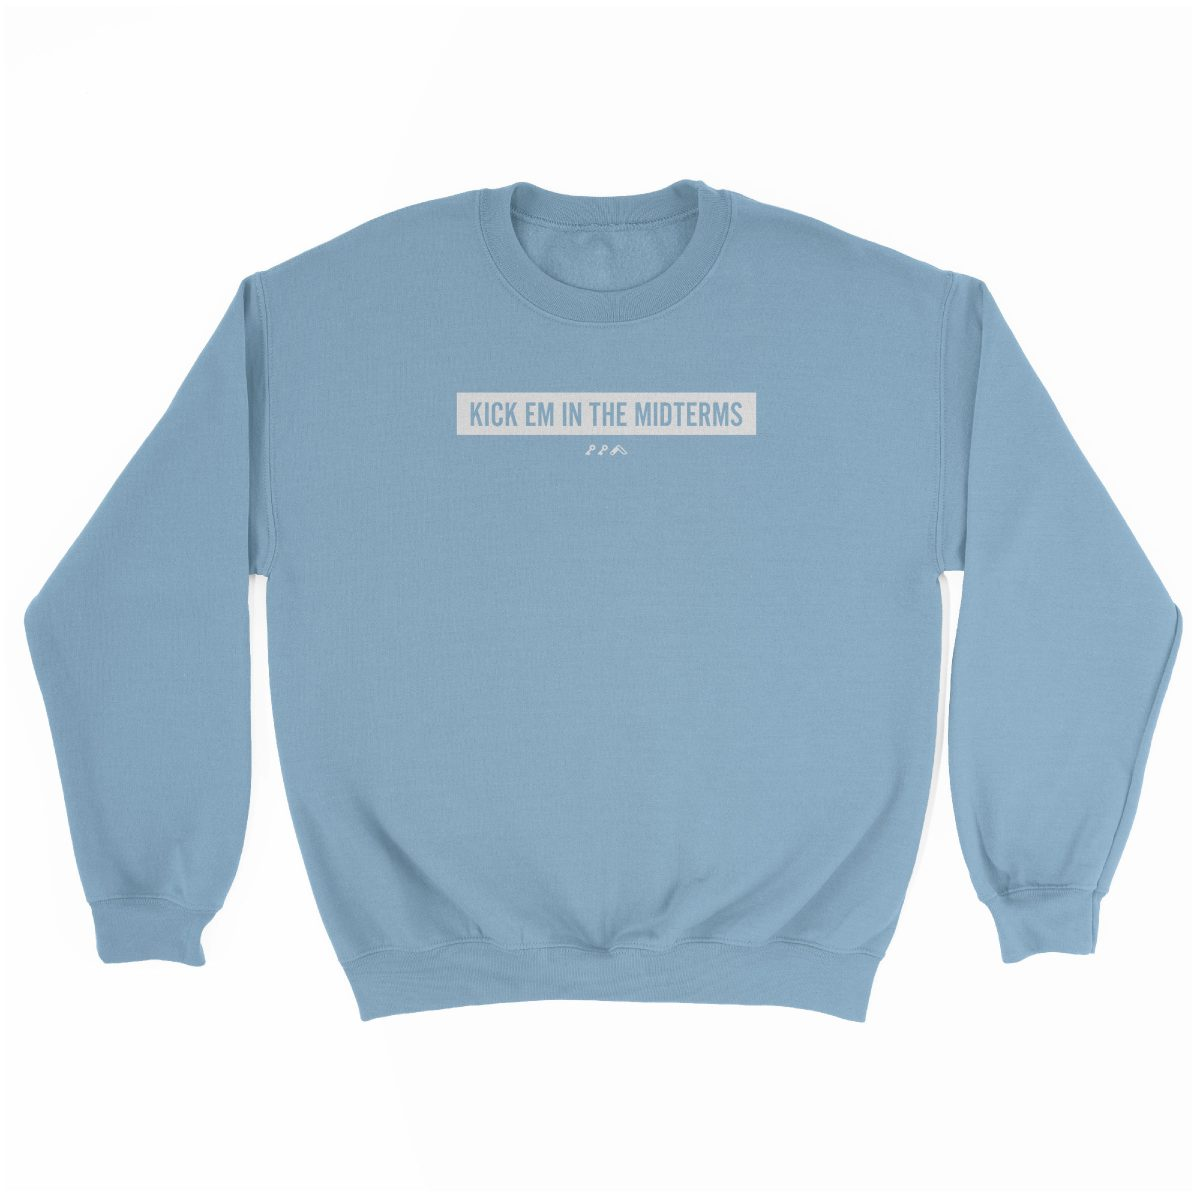 """KICK EM IN THE MIDTERMS"" funny political sweatshirt in light blue"